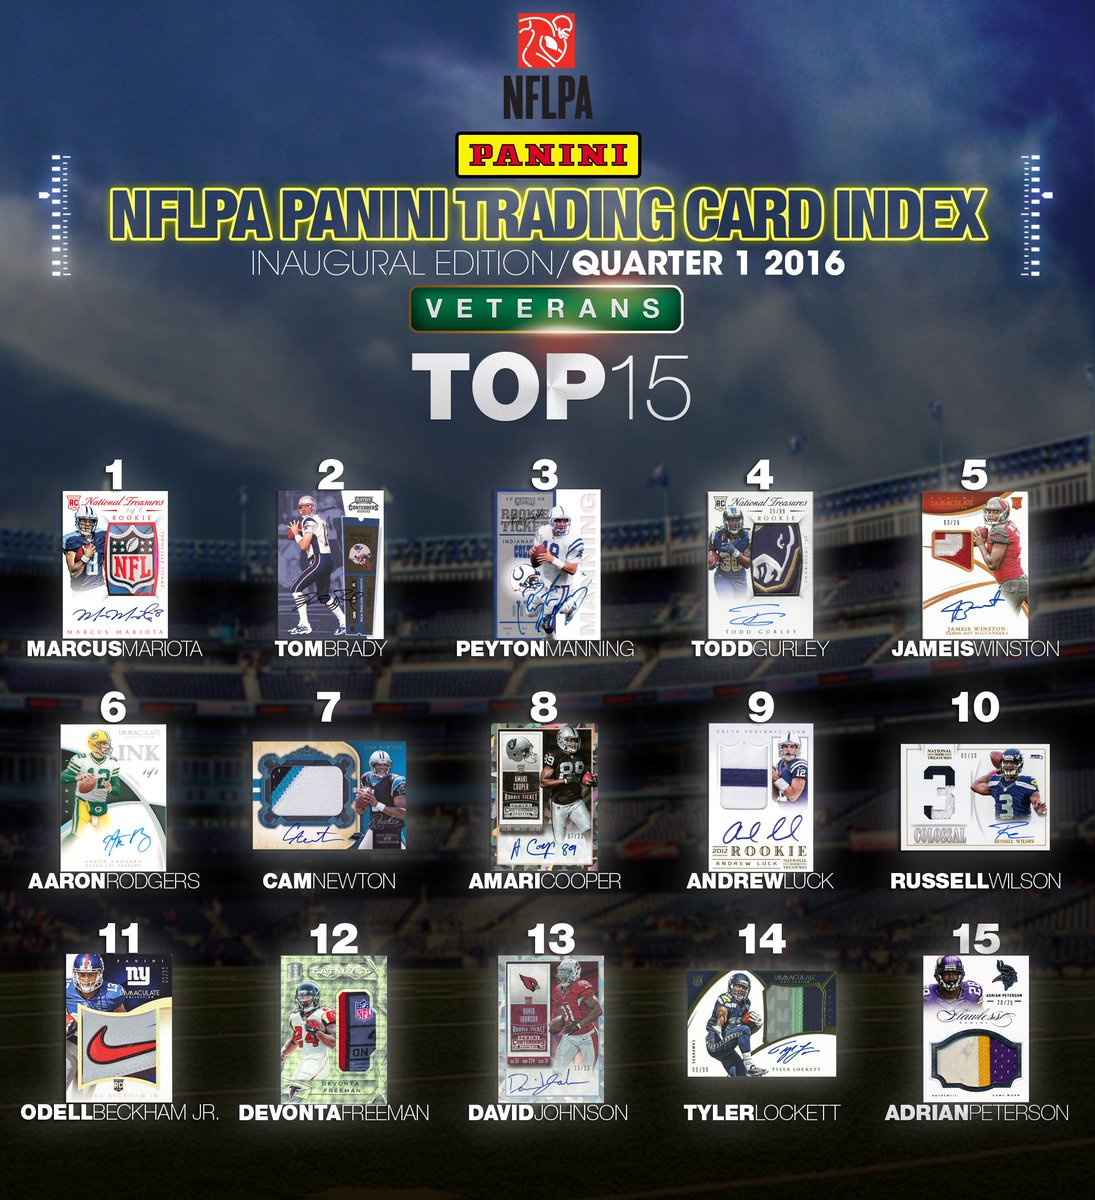 Marcus Mariota tops the new quarterly NFLPA Panini Trading Card Index https://t.co/CpRffHp5i1 https://t.co/ZreycRyFfa